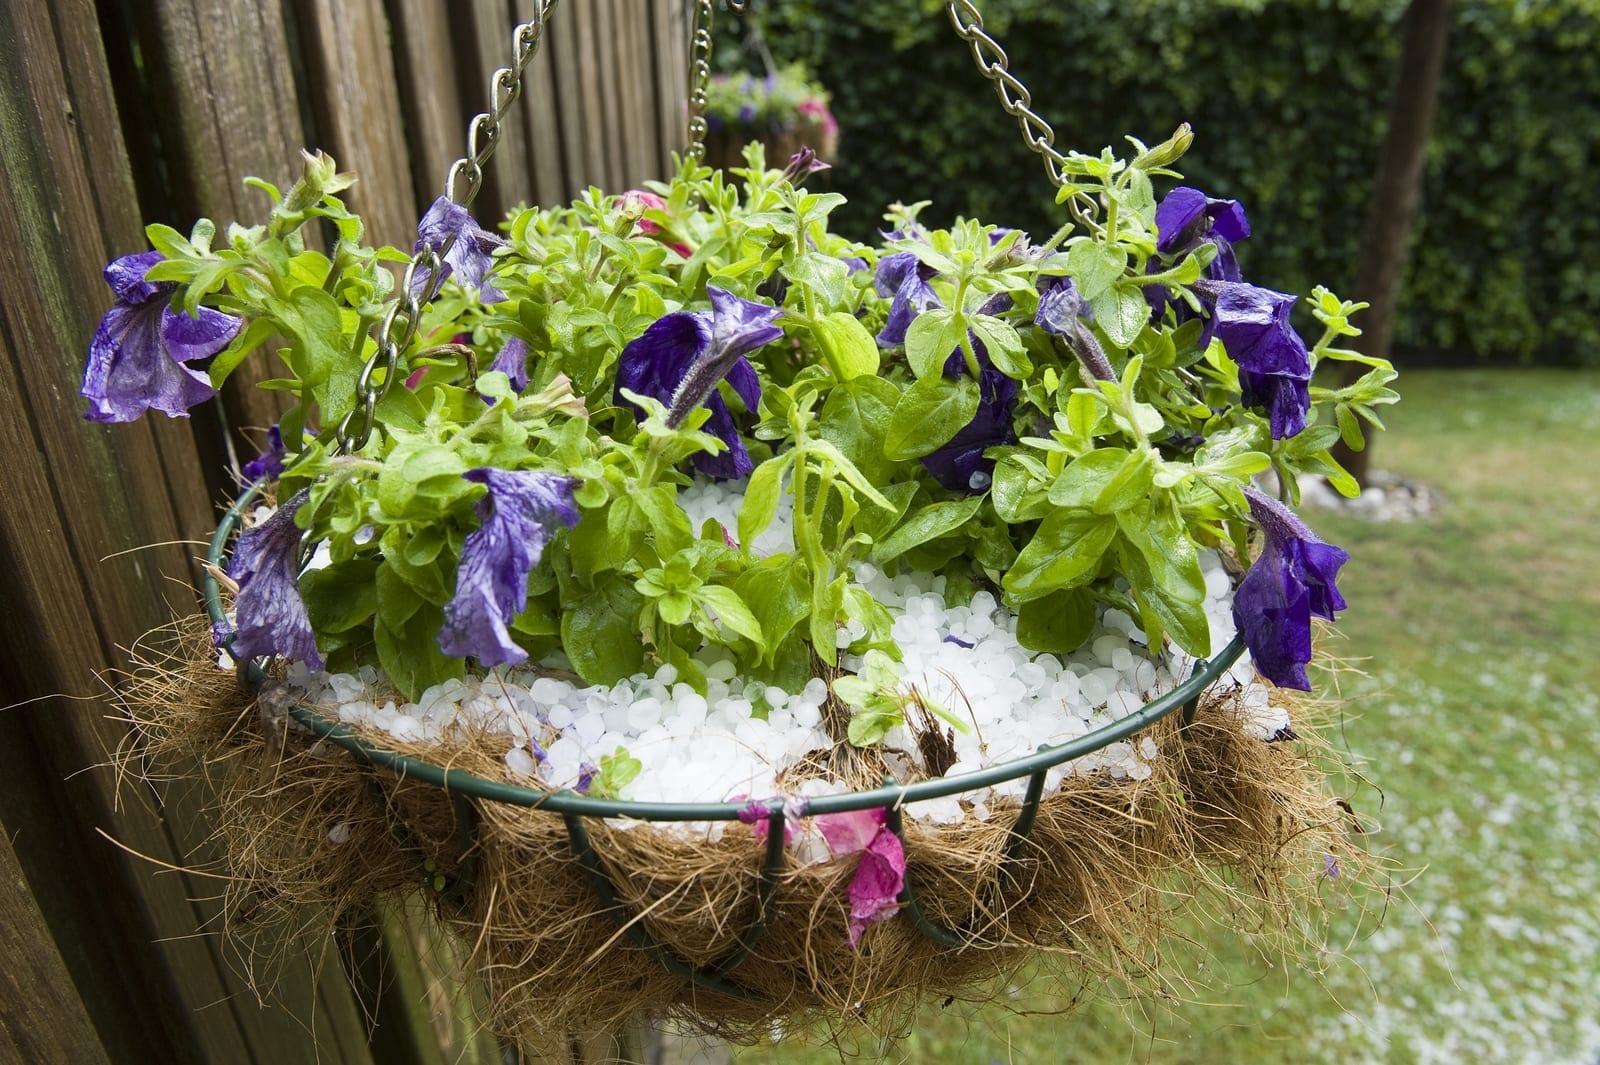 Plan and Be Ready - Protecting Your Plants From the Damage Caused by Hailstorms - Part Two